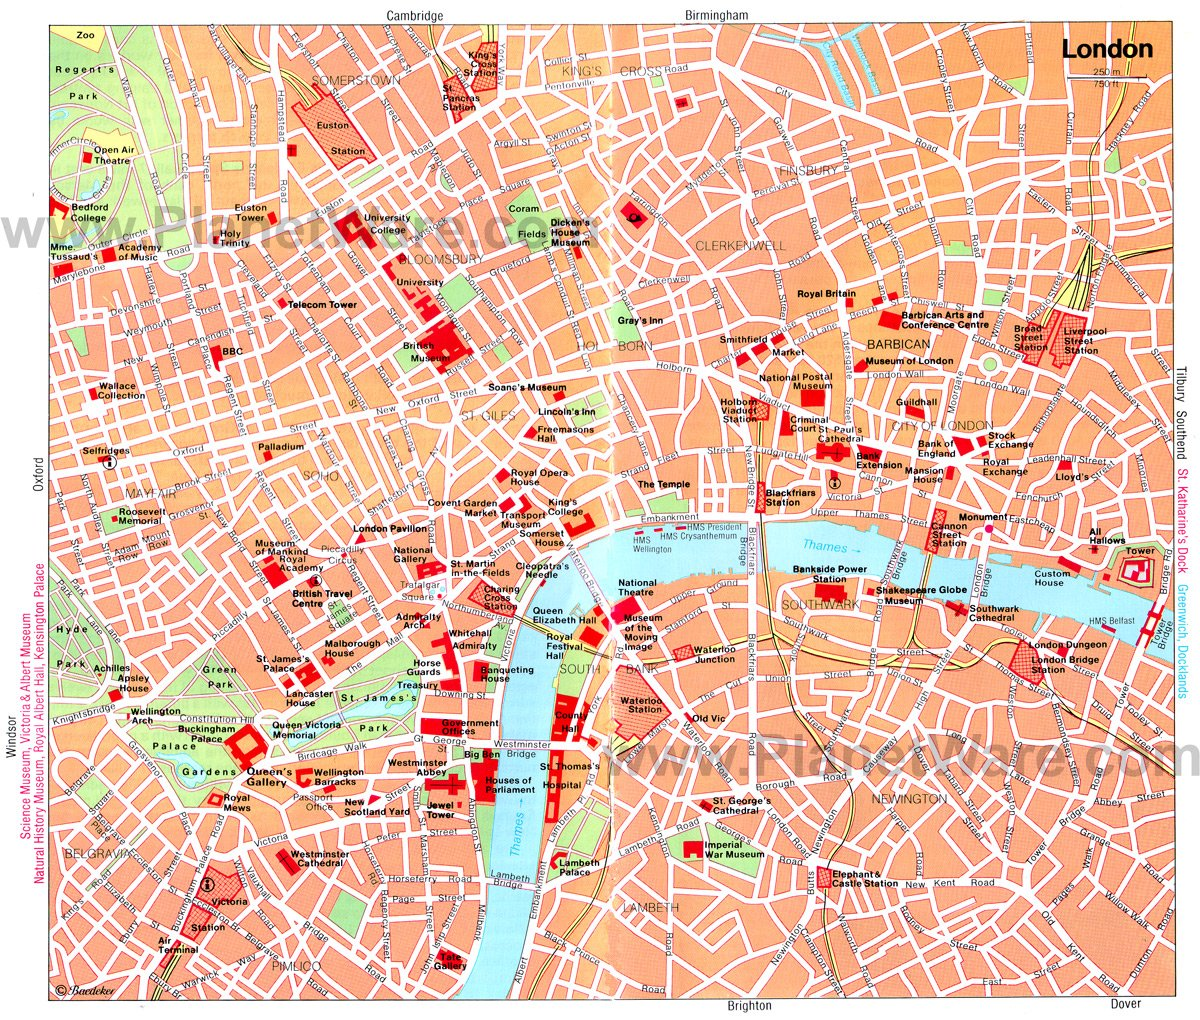 17 TopRated Tourist Attractions in London – Tourist Map Of London